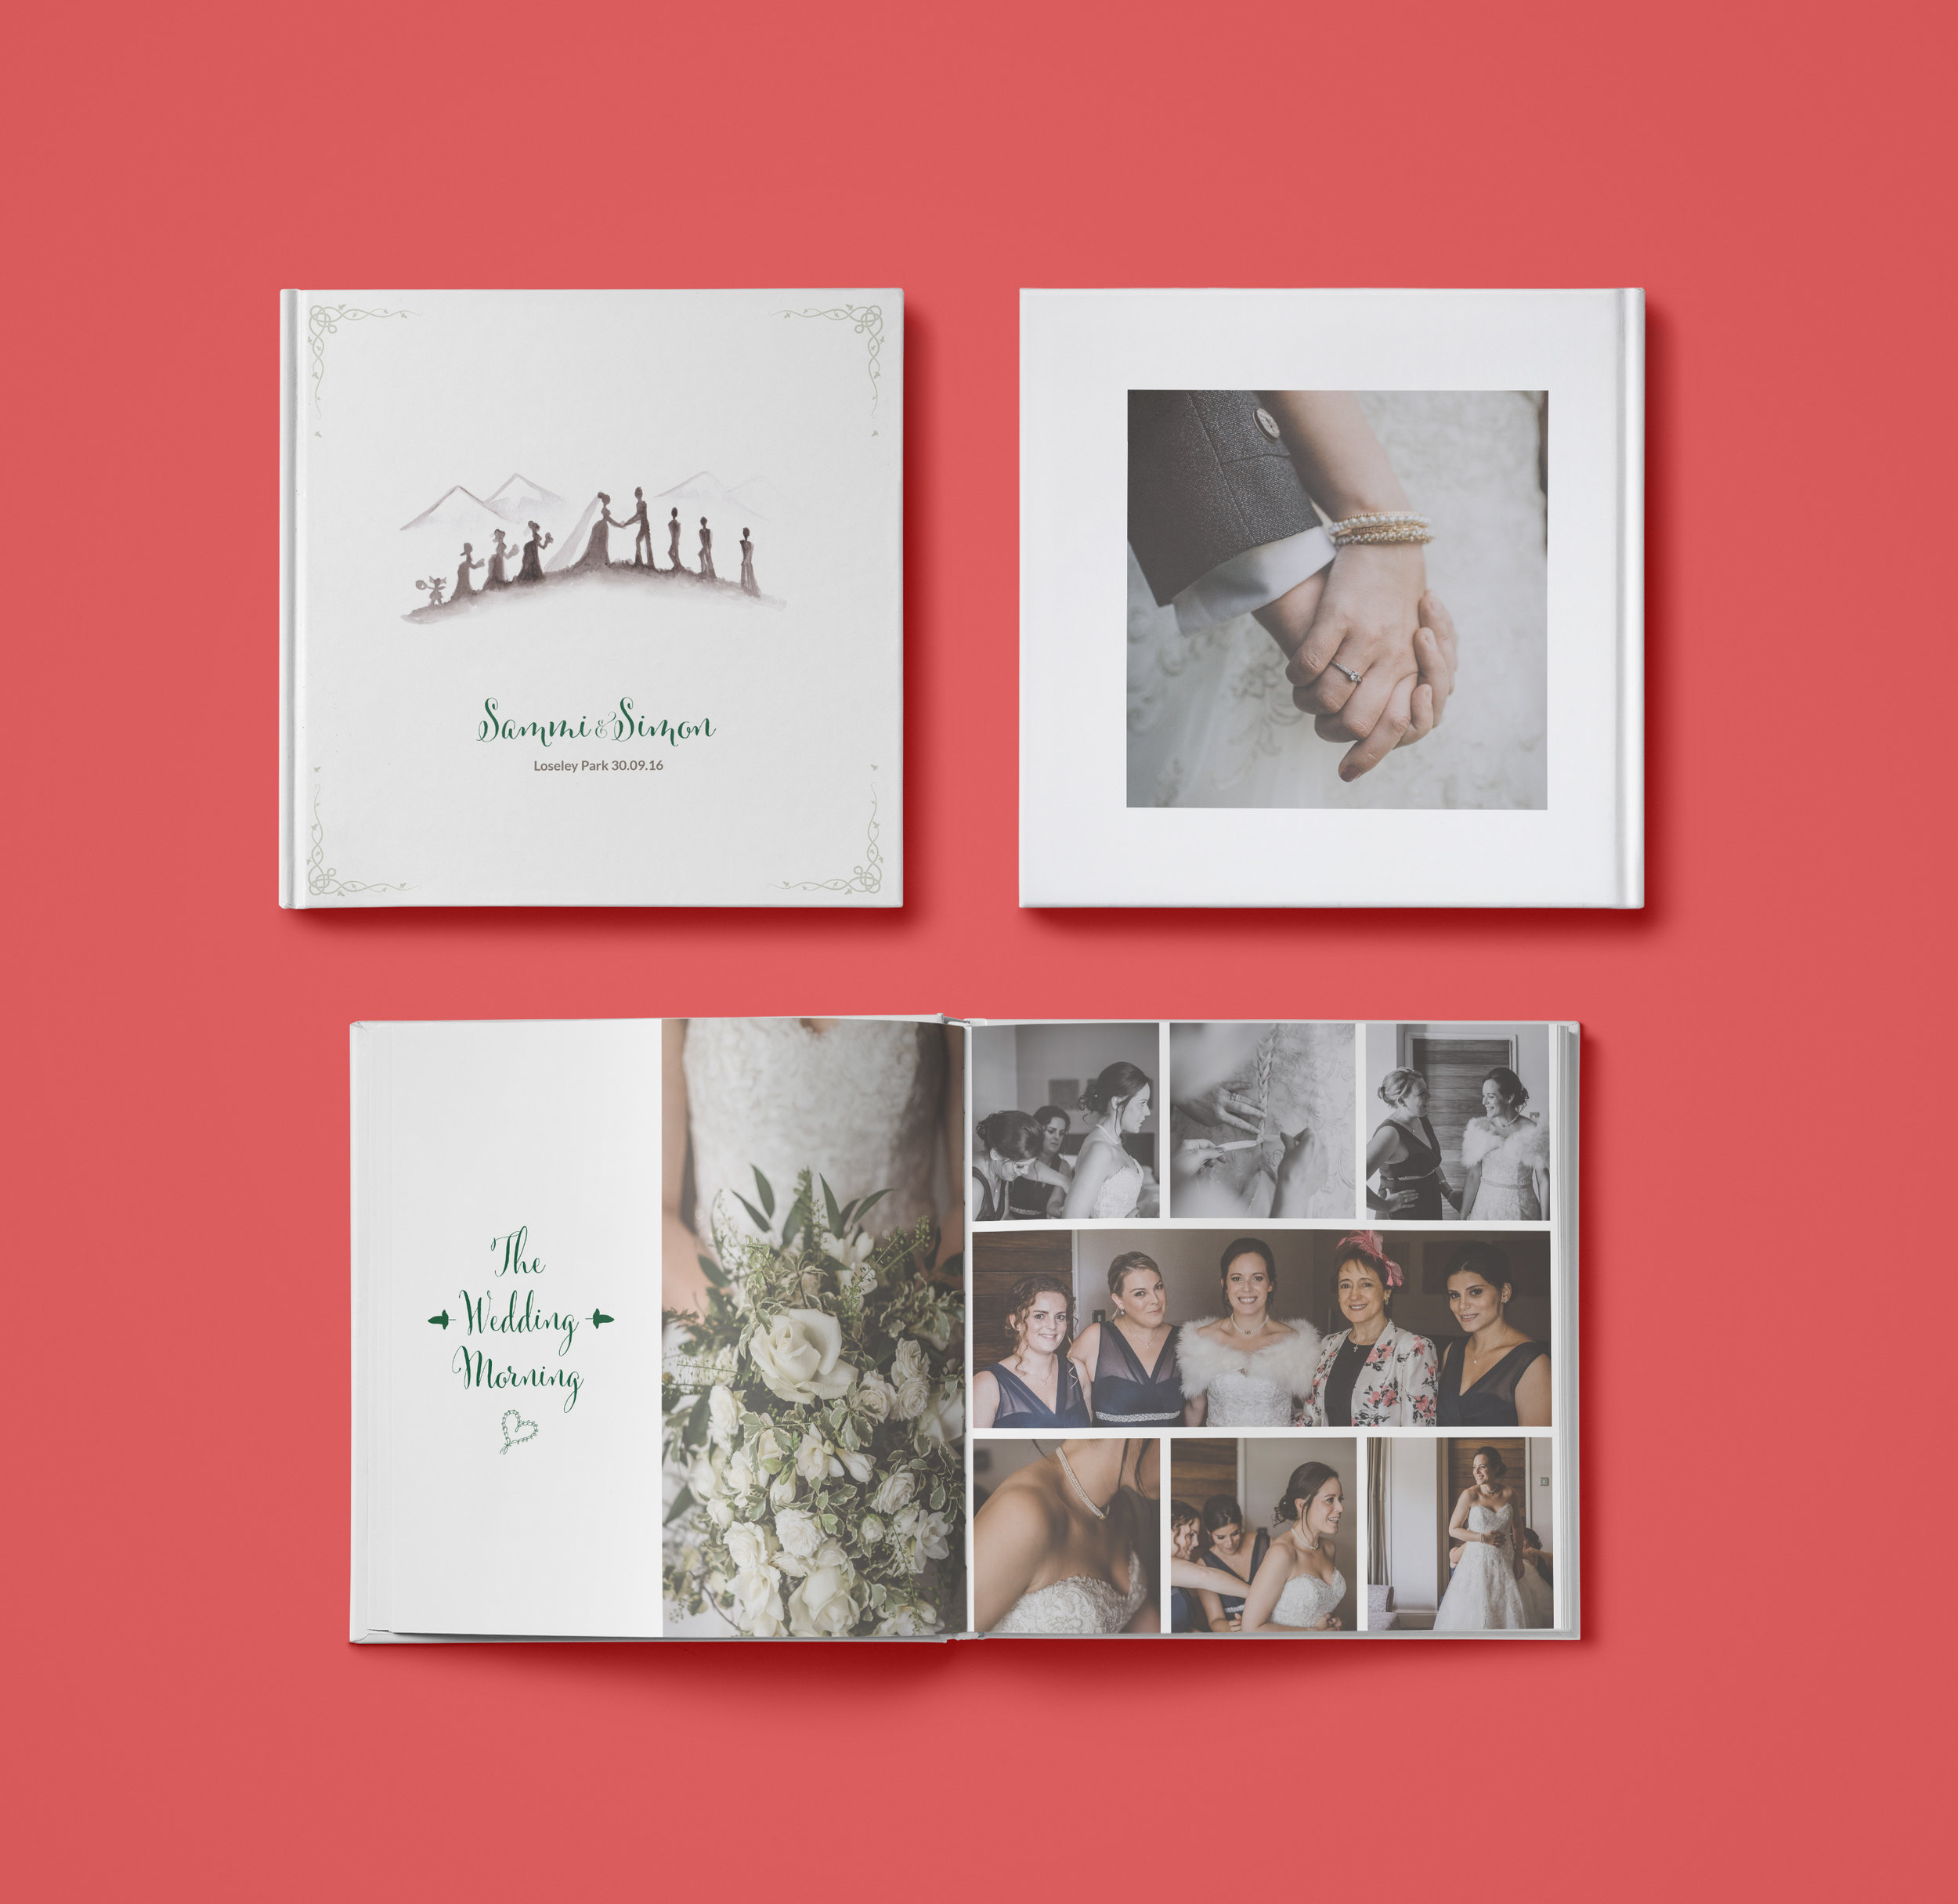 wedding-album-mockup.jpg